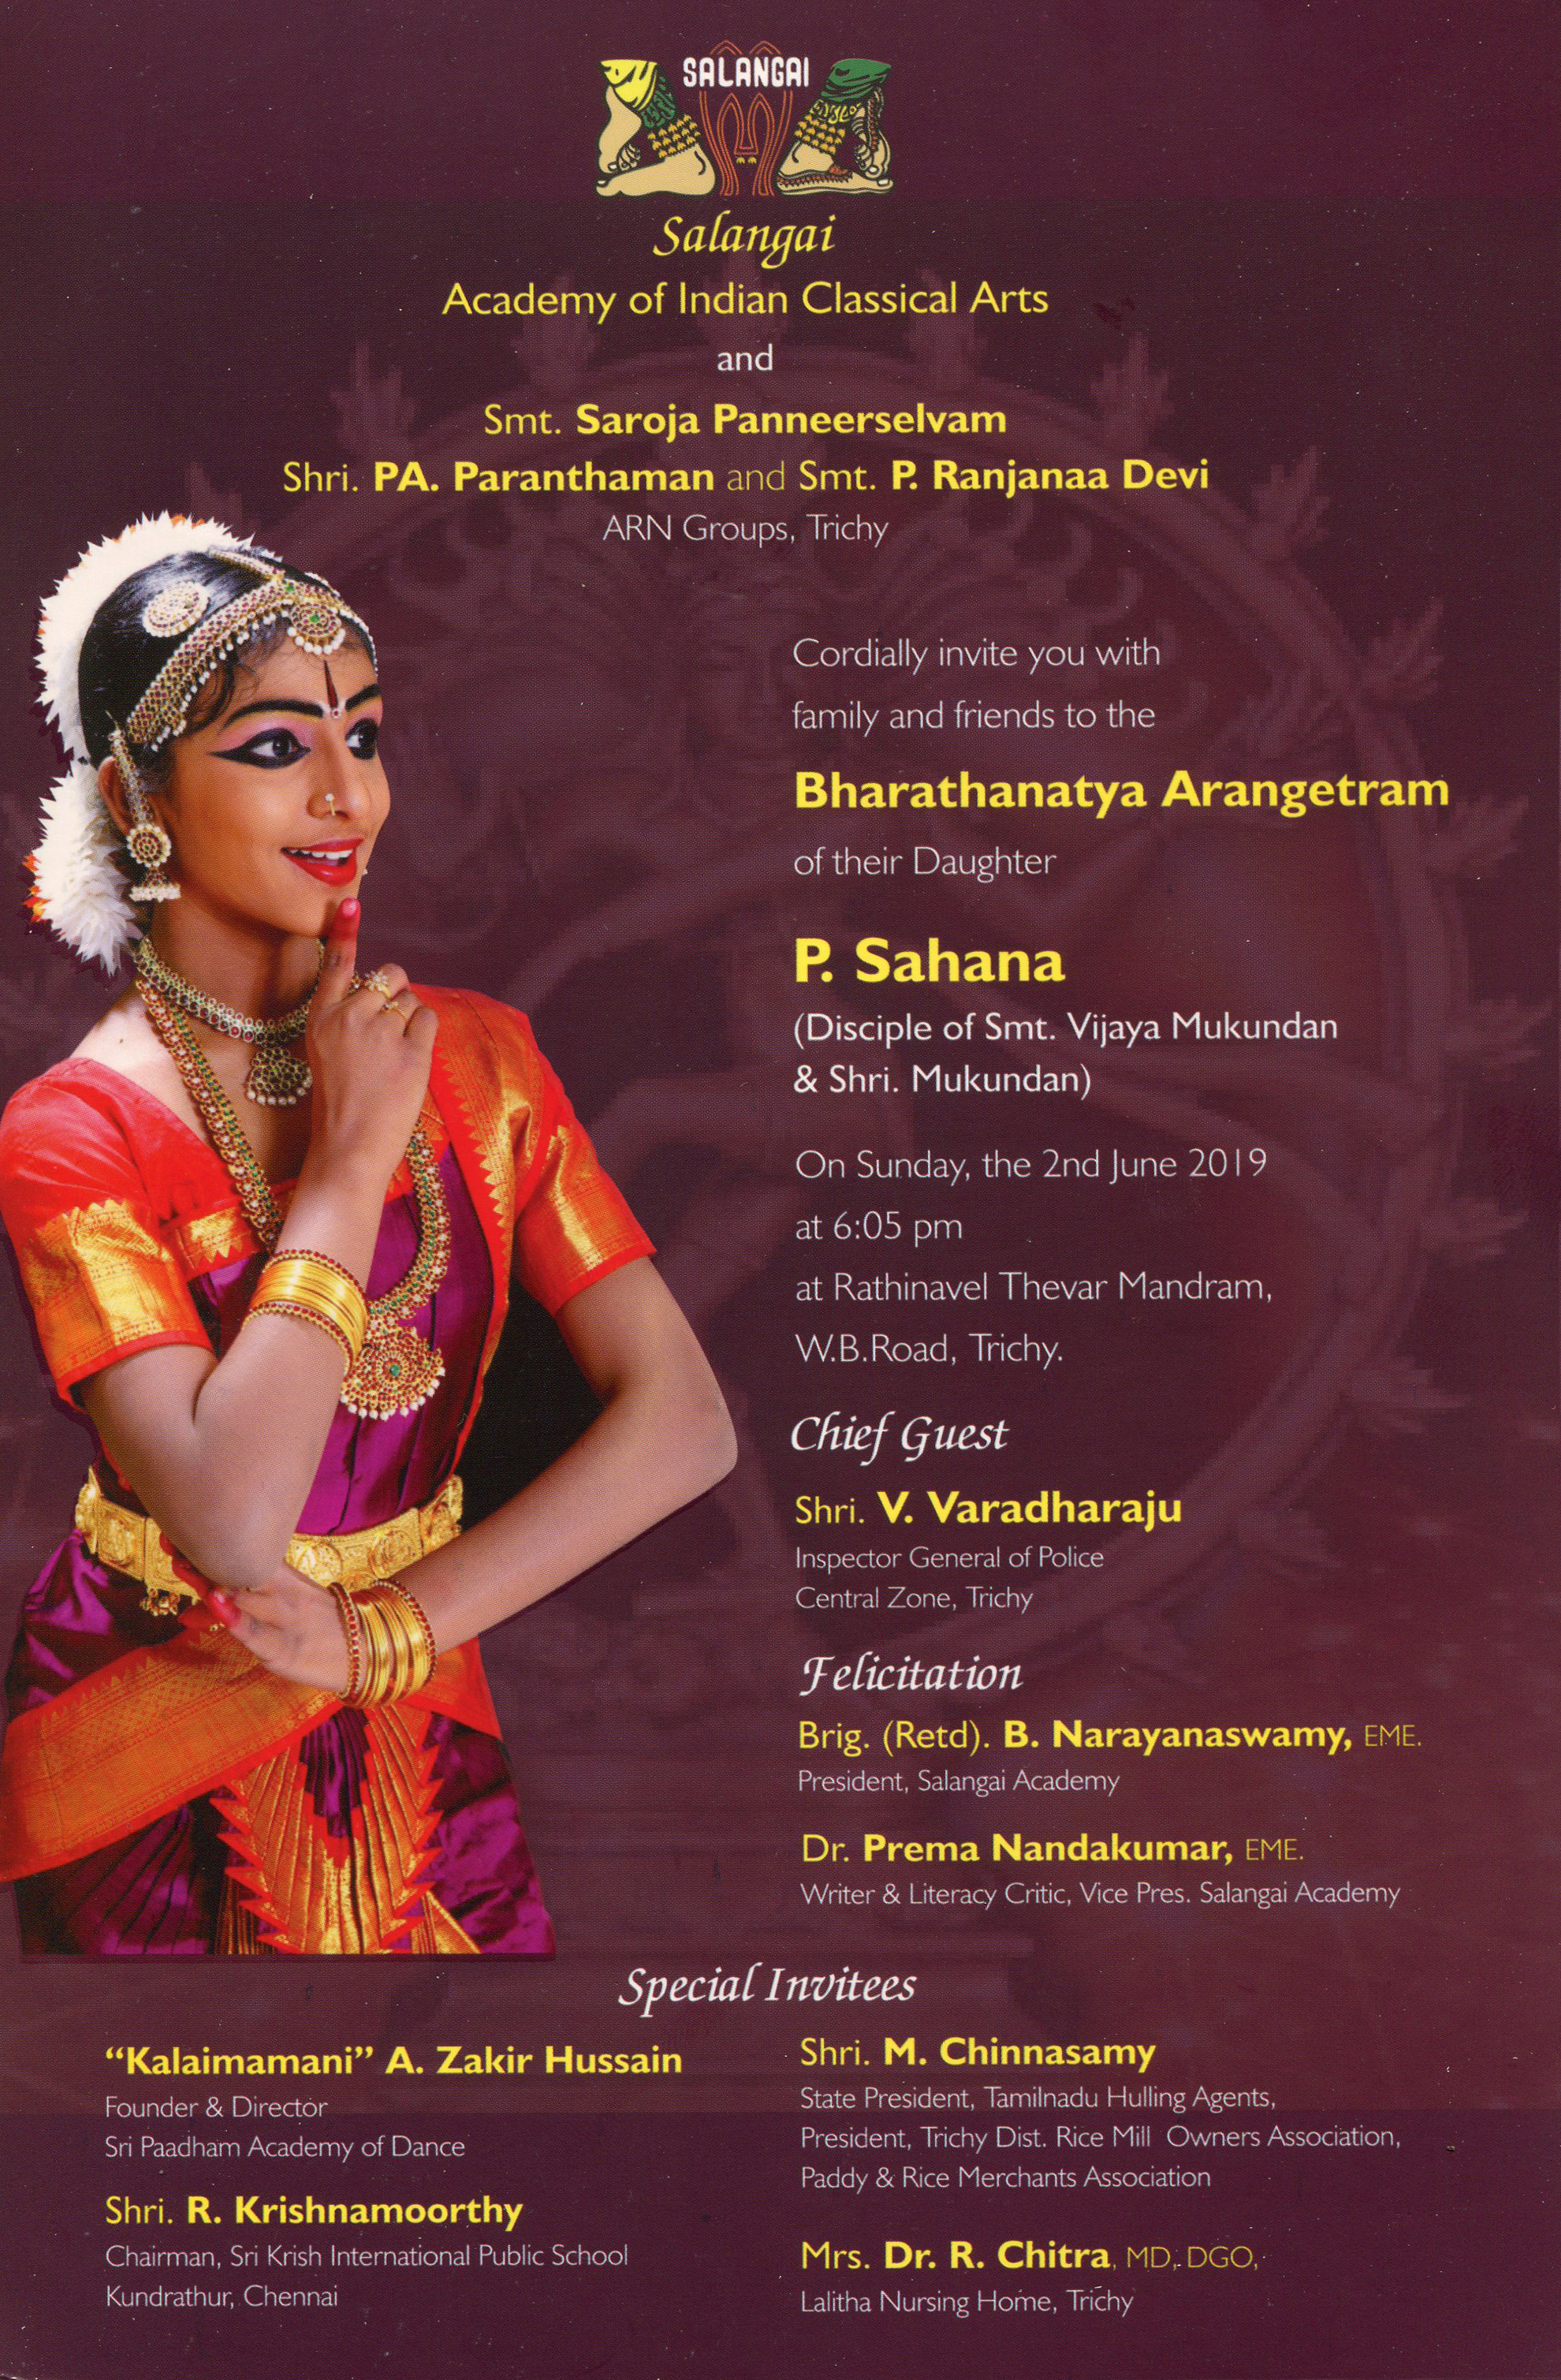 Salangai Academy of Indian Classical Arts